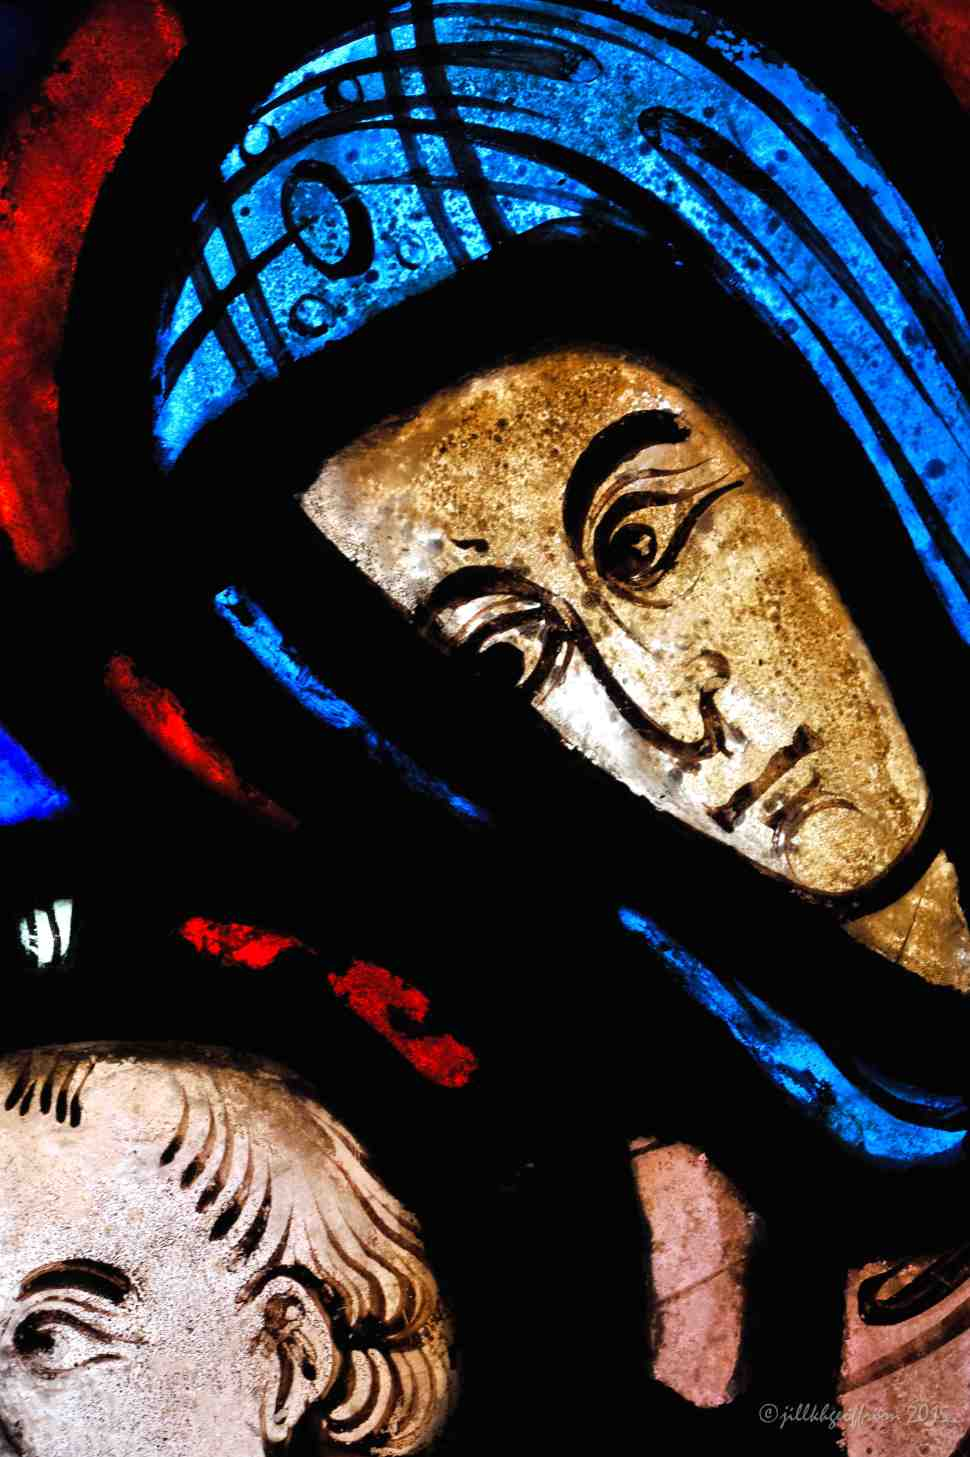 Mary watches Jesus by Jill K H Geoffrion